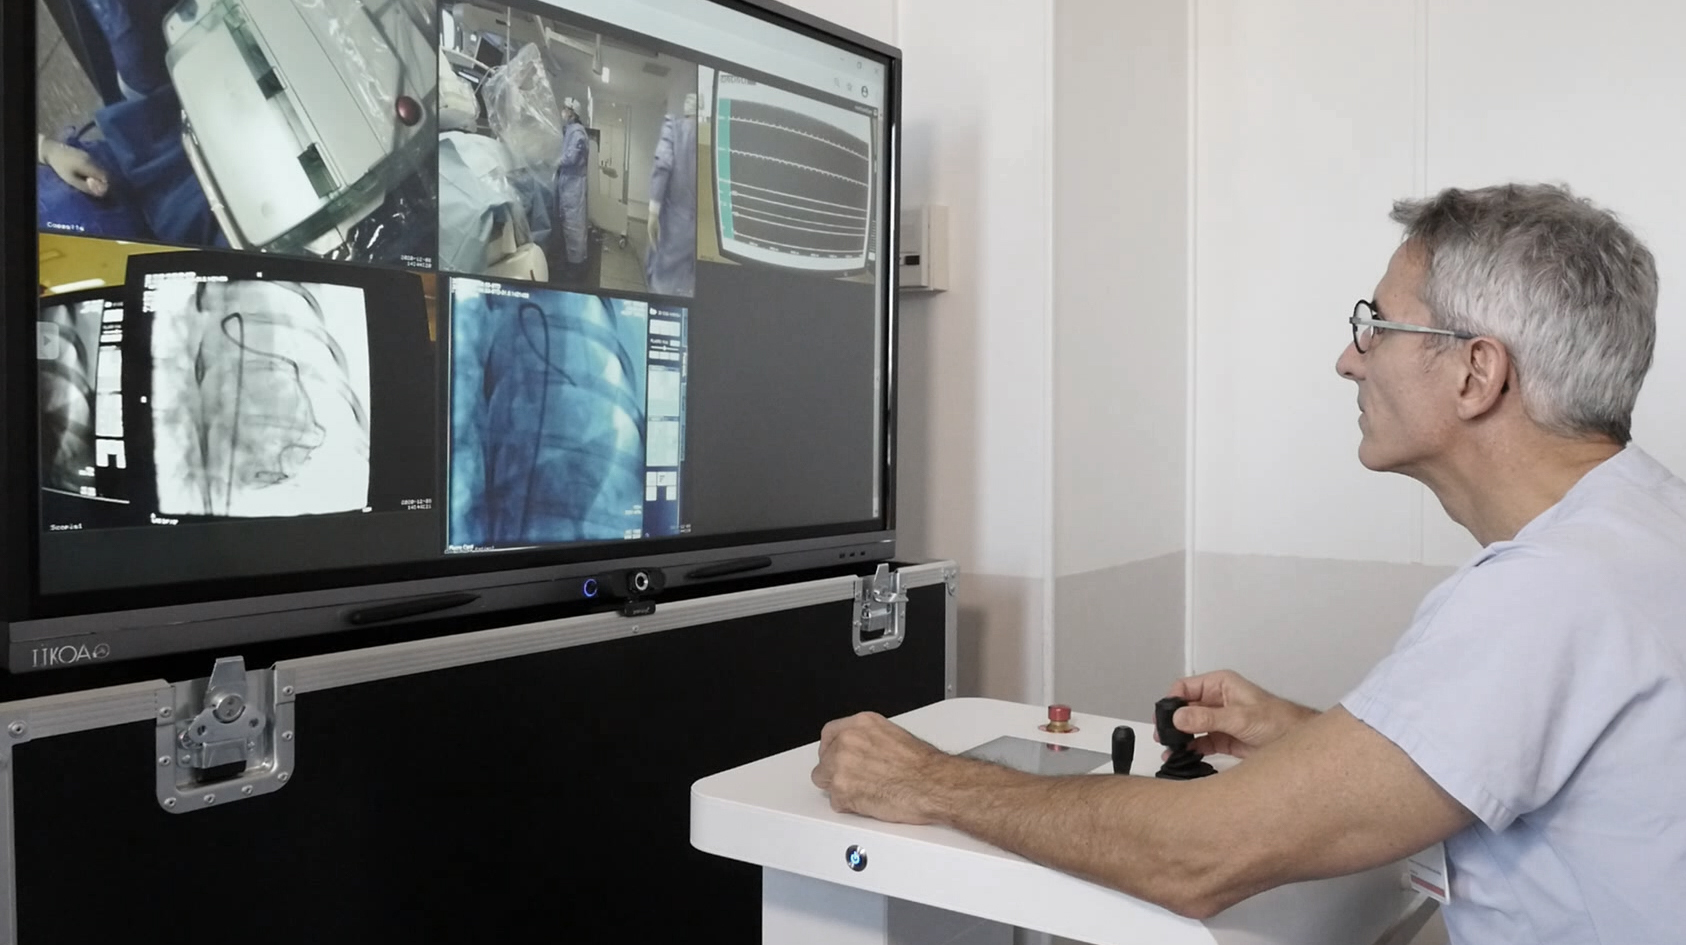 biotech info articles remi sabatier during first remote pci in europe def